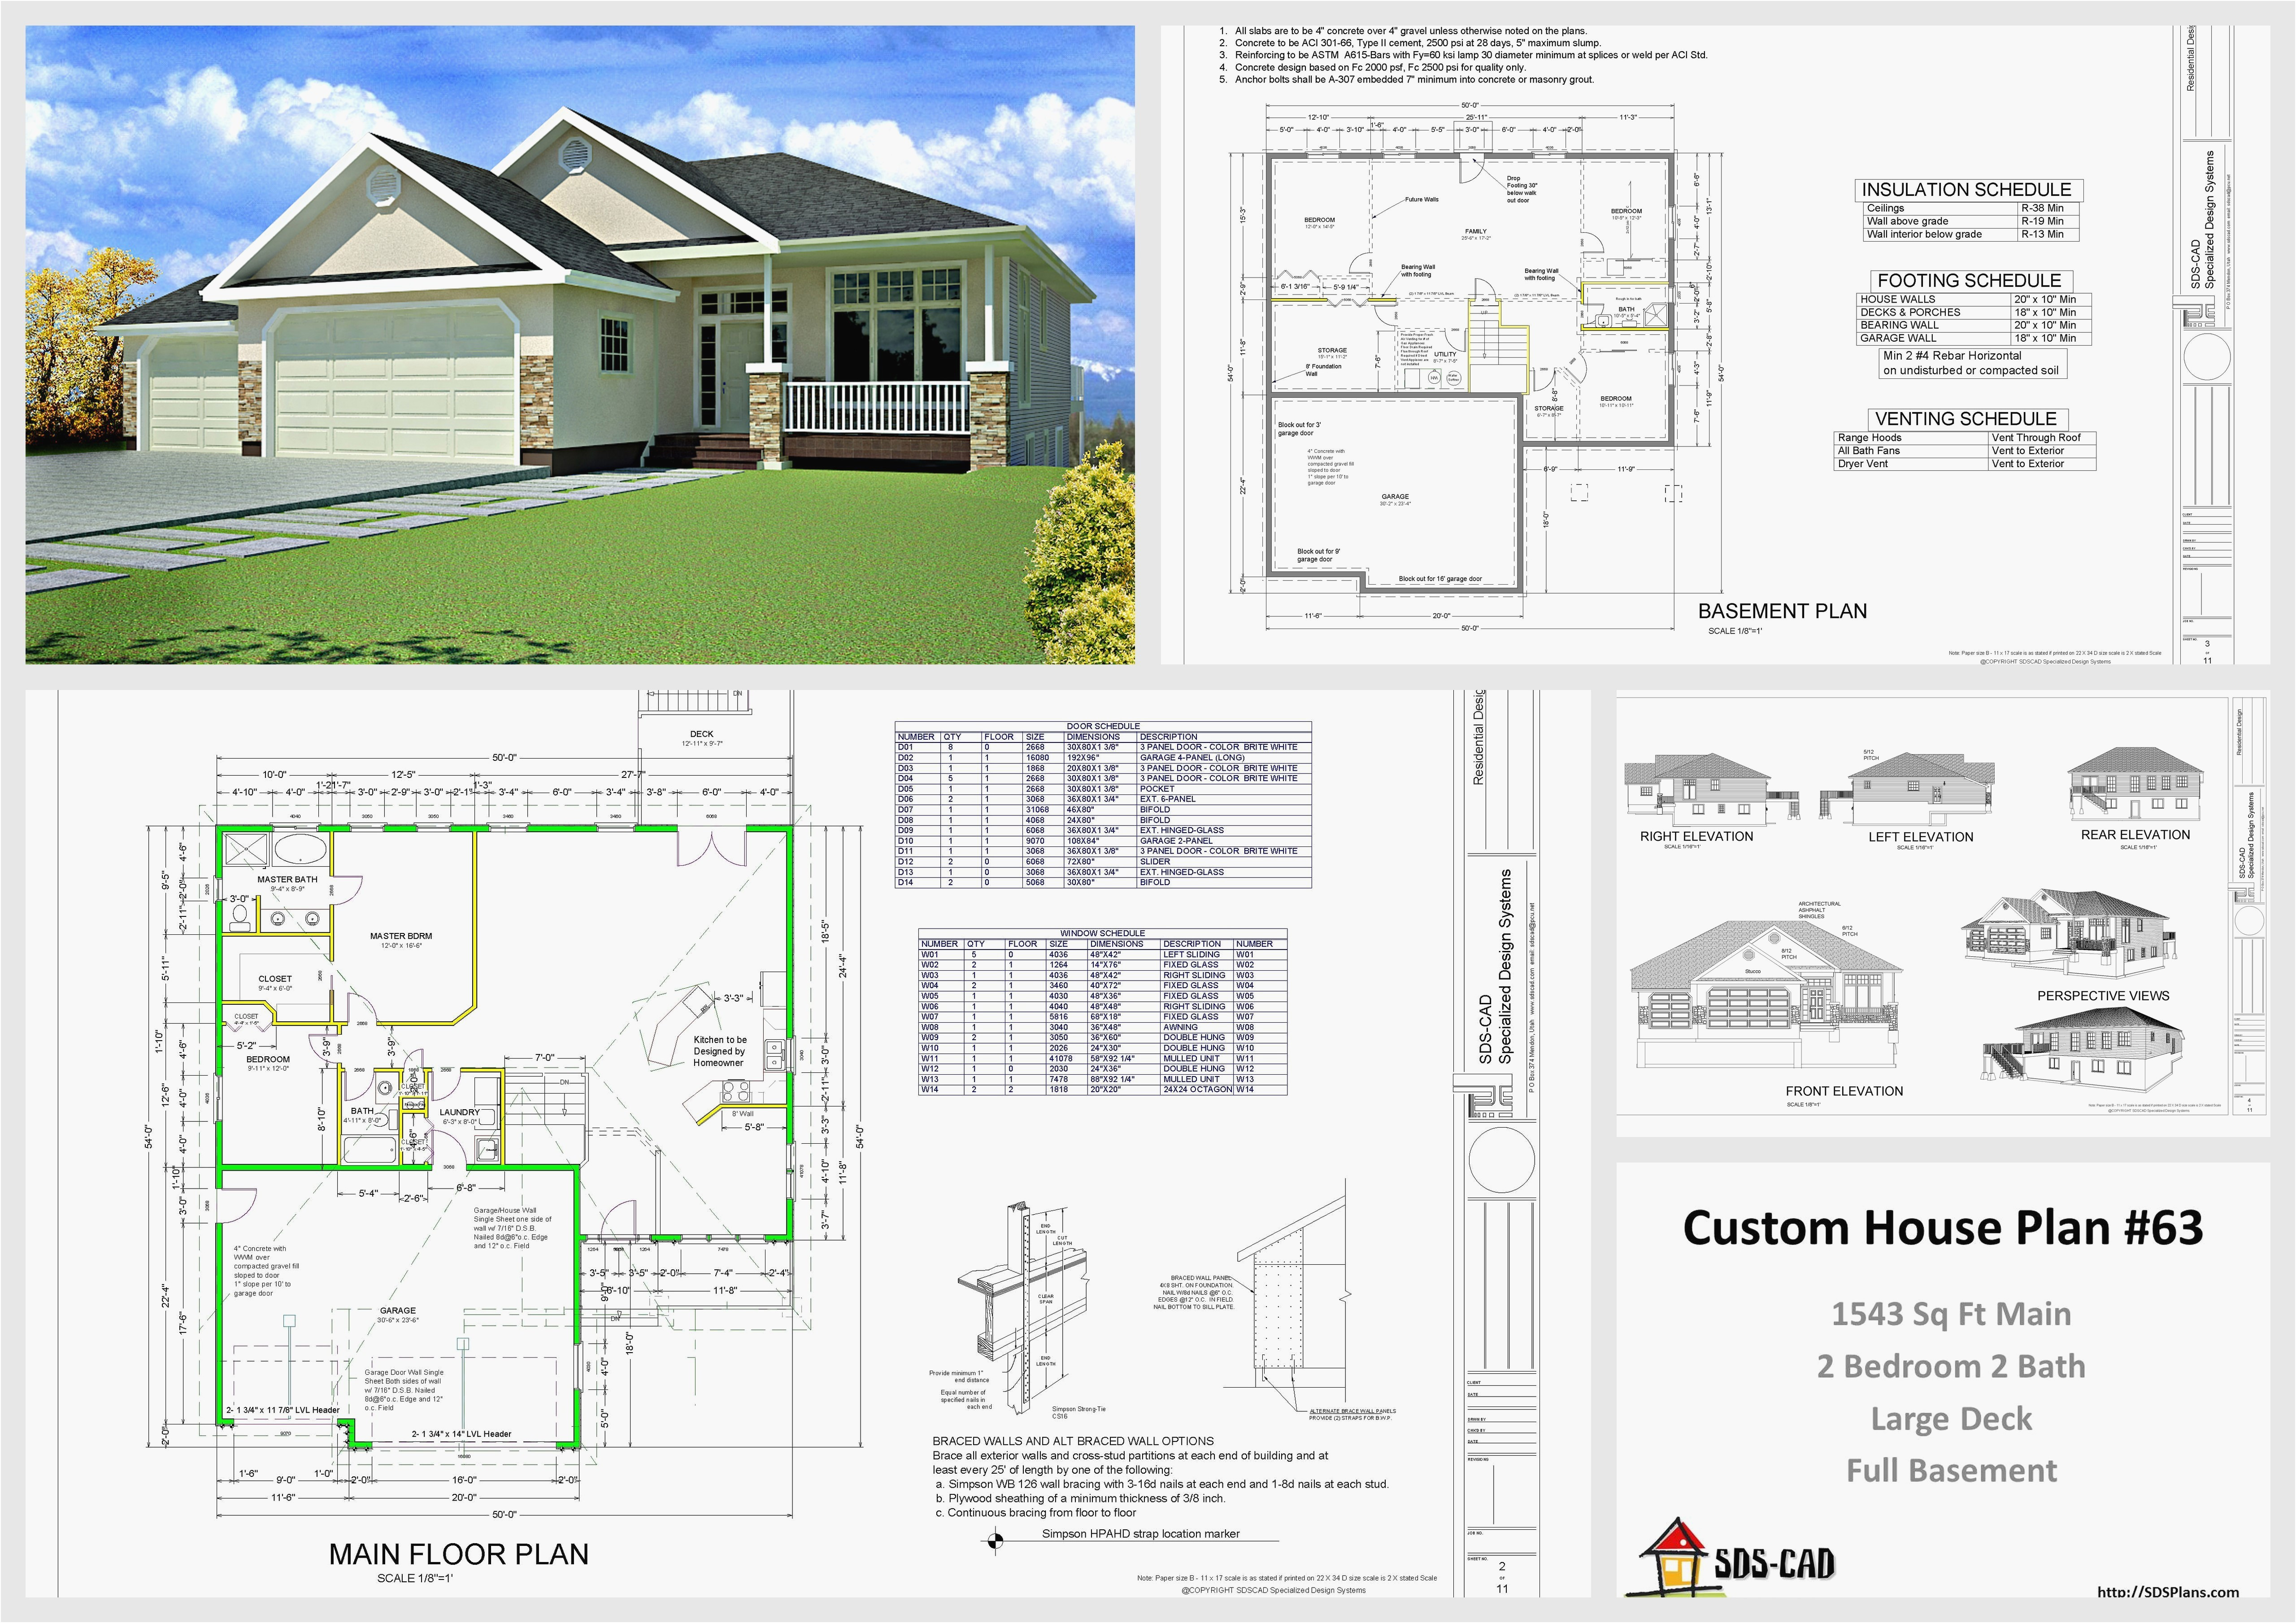 3d house plan drawing software free download elegant draw house plans program free drawing software download freeware